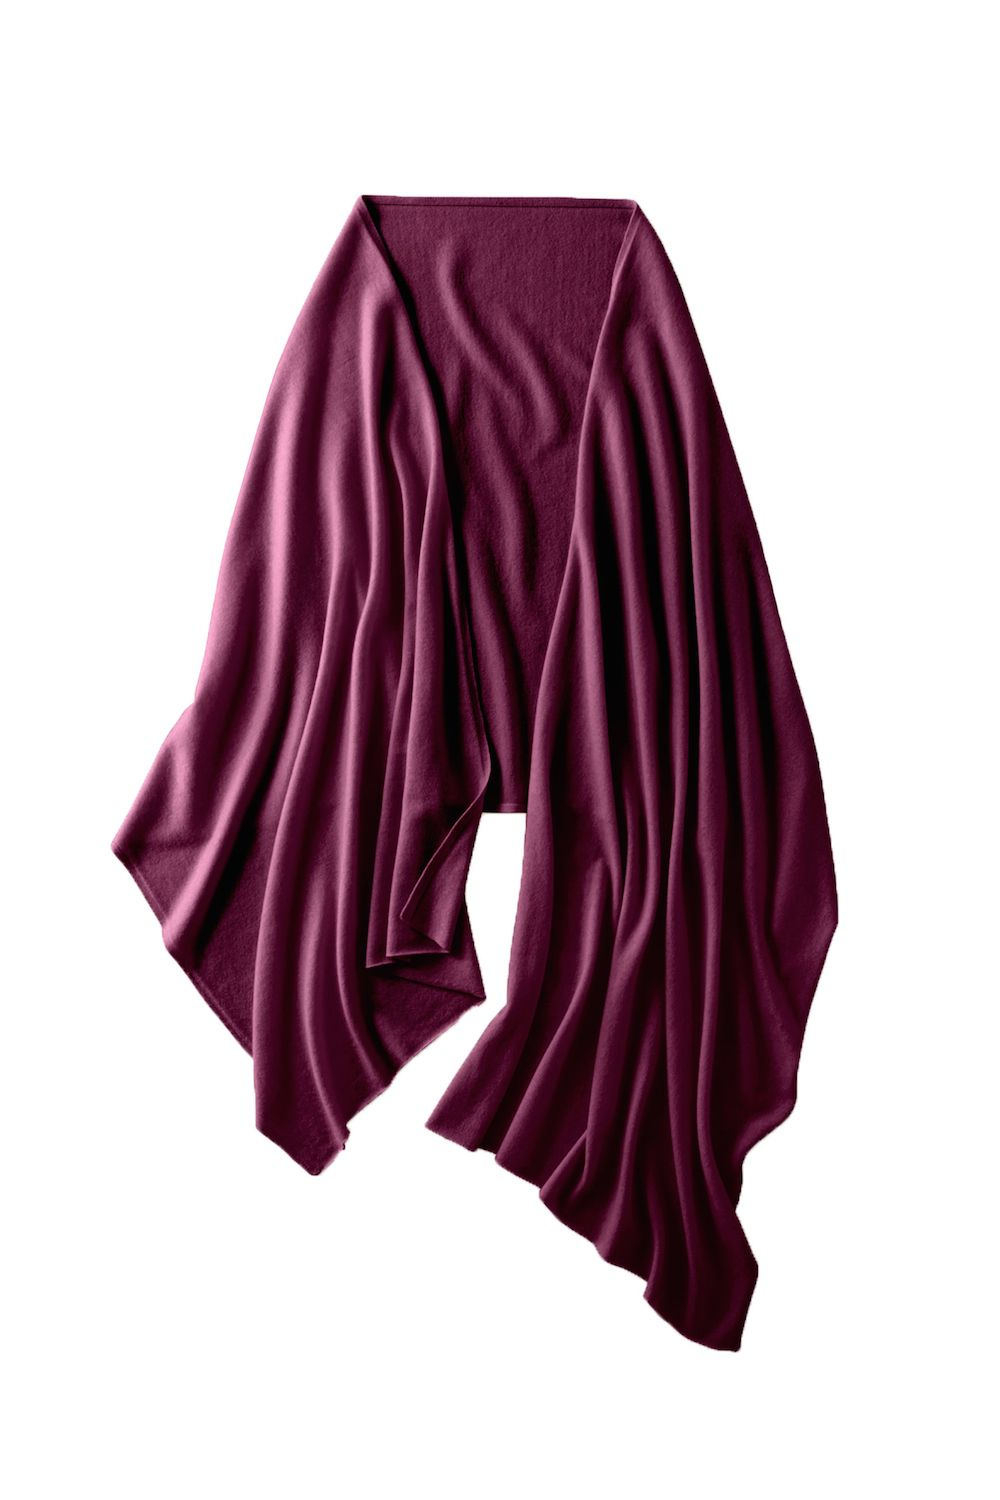 "<p>Cashmere. Do we really need to say more? This wrap is the perfect wardrobe catch-all that can be used to snuggle up as a blanket, worn as an extra layer, used as a going out wrap...you get the gist. </p><p>Garnet Hill Cashmere Wrap, $188&#x3B; <a href=""http://www.garnethill.com/cashmere-wrap/334124"" target=""_blank"">garnethill.com</a>.</p>"